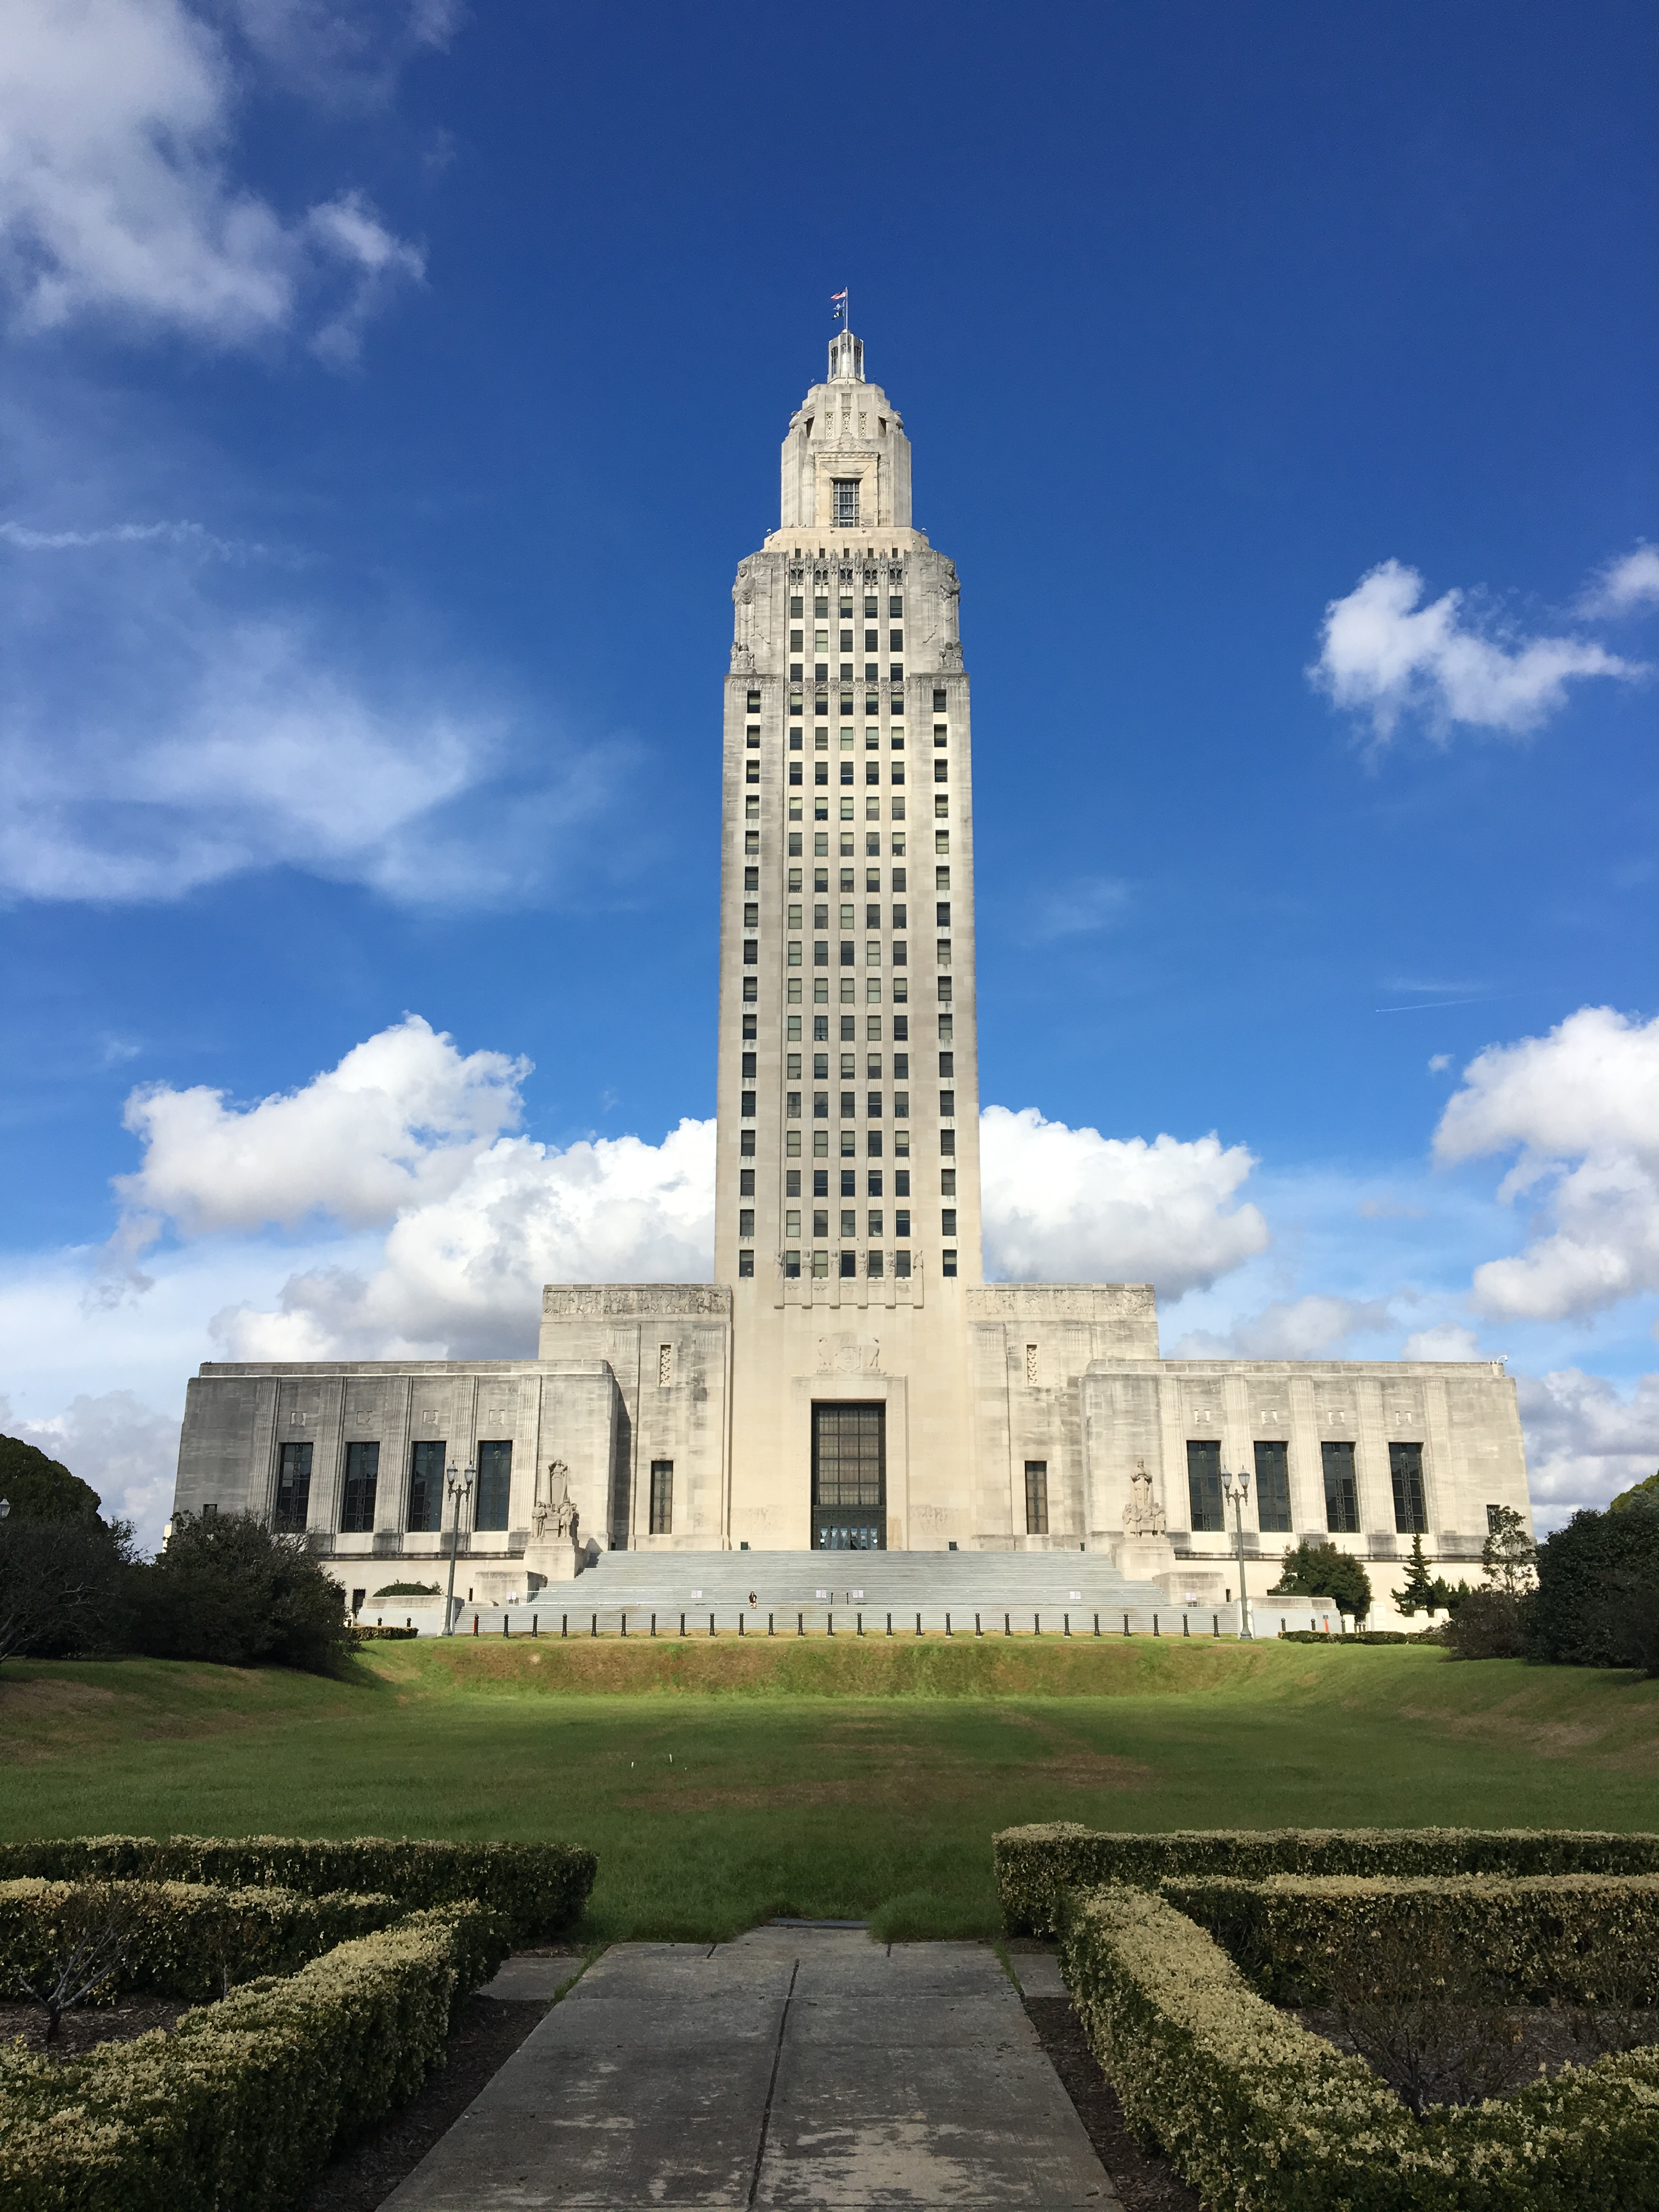 Louisiana state 23 runner ramblings this building replaced the old louisiana state capitol building which housed the louisiana state legislature from the mid 19th century until the current sciox Choice Image